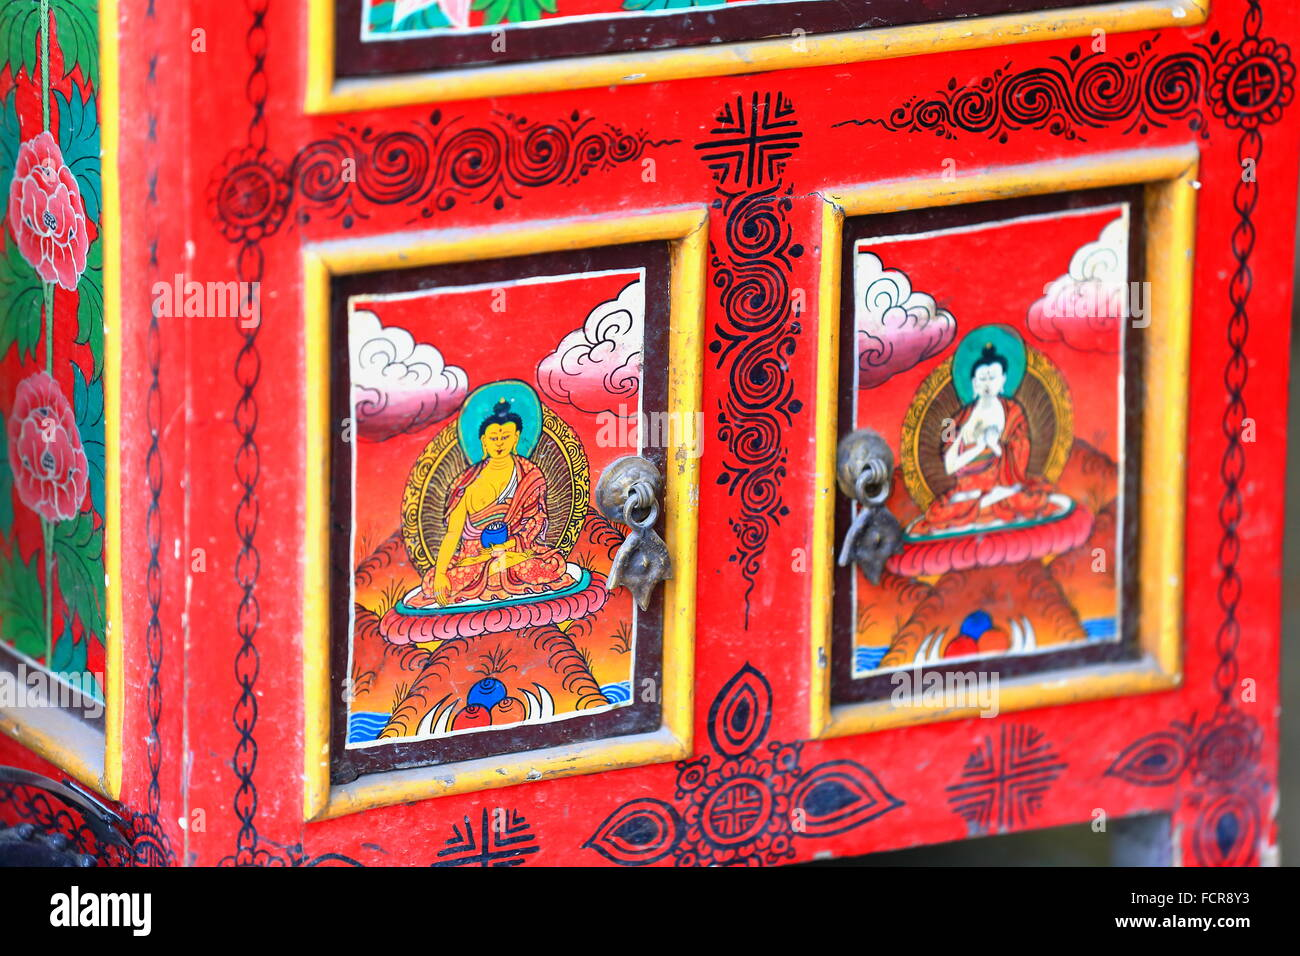 red lacquered furniture. Nepalese-tibetan Buddhist Style Furniture: Red Lacquered Wooden Ark Showing Images Of The Buddha-souvenir Shop-Kathmandu-Nepal. Furniture S